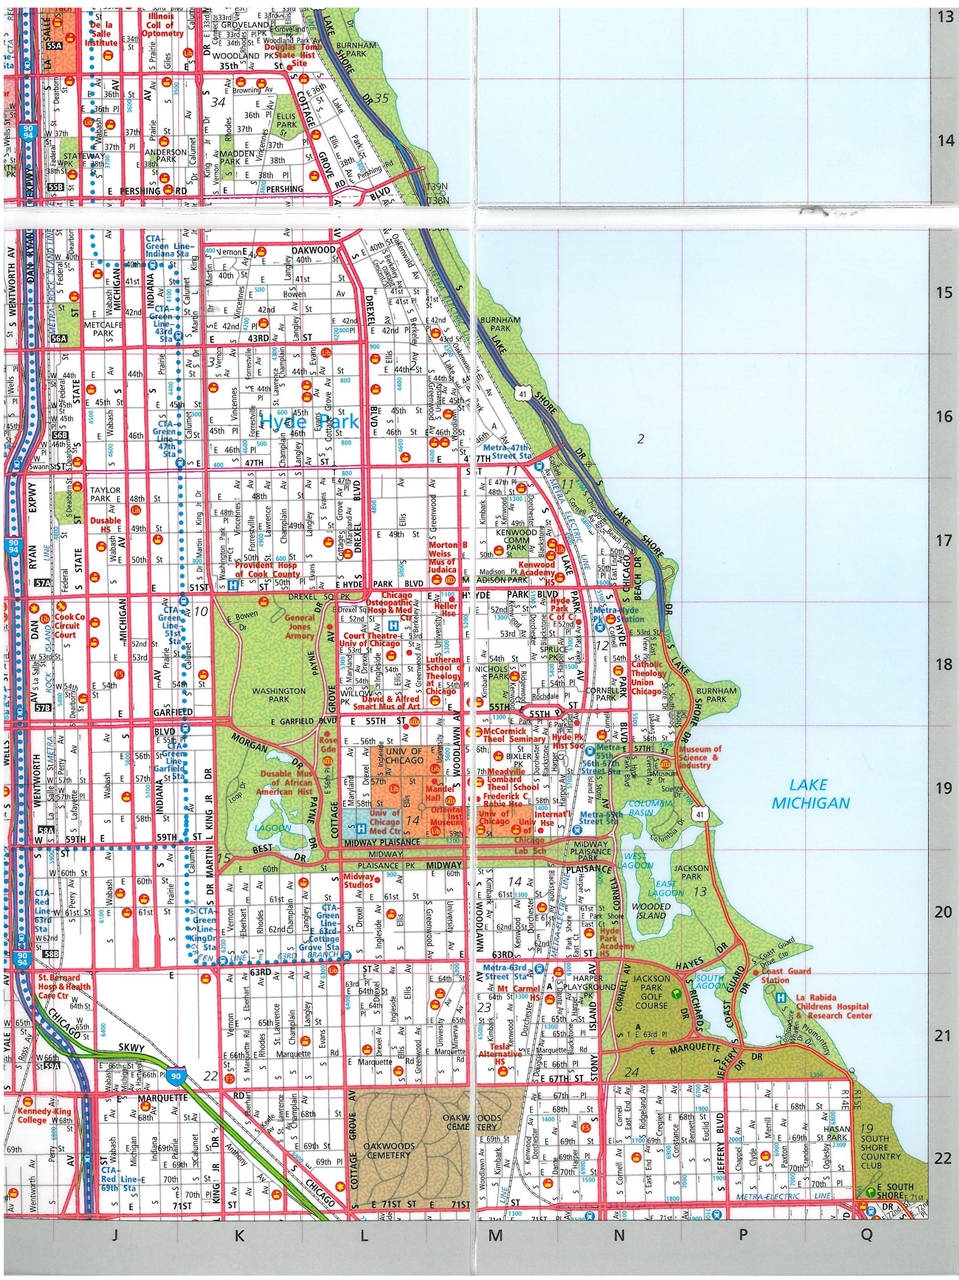 21 perfect Chicago Street Map bnhspinecom